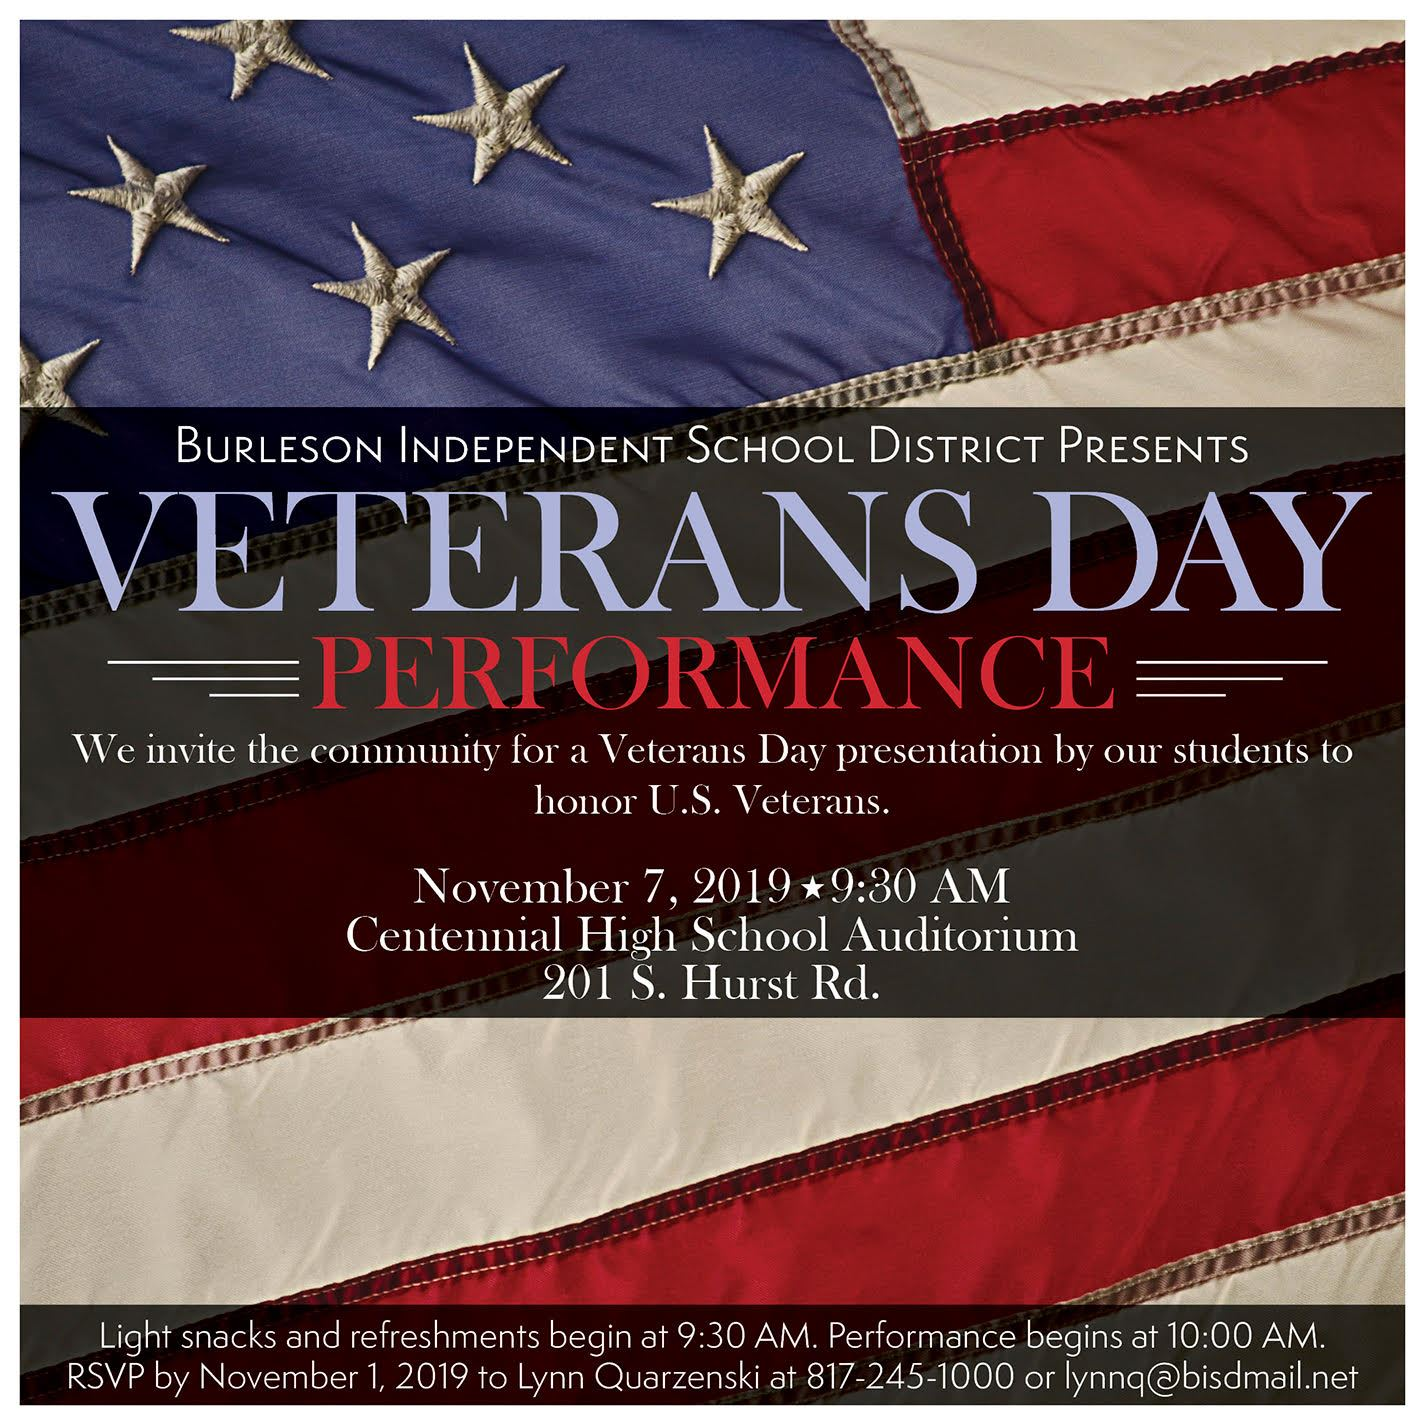 Veterans Day Performance, Thursday, November 7th